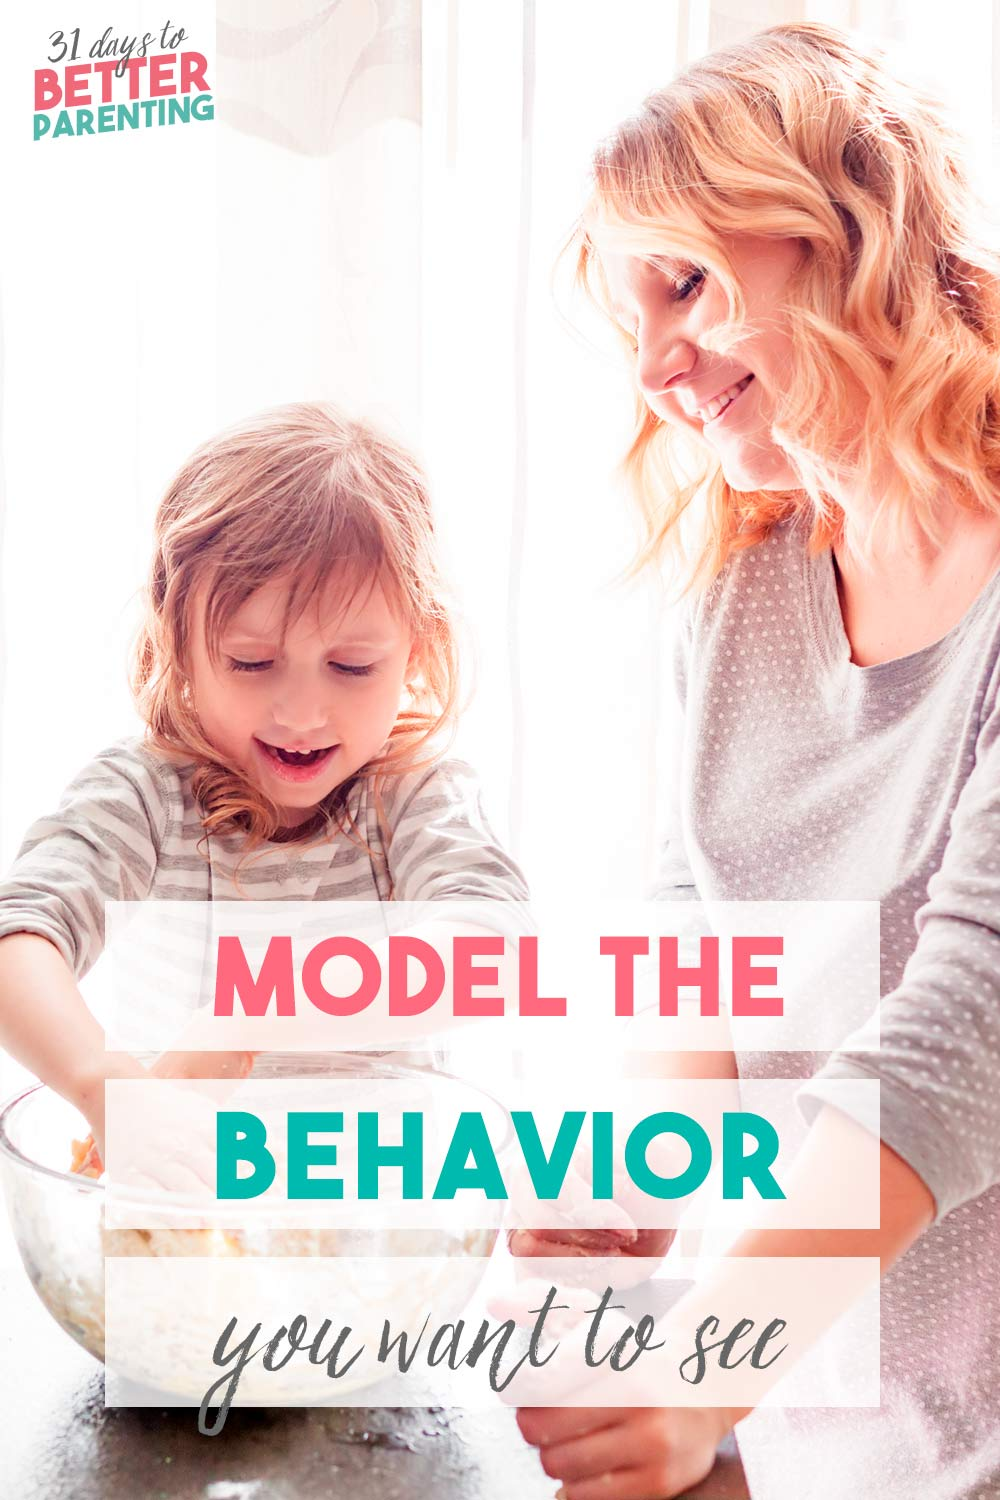 Want to see good behavior in children? Model the behavior you want to see. Here's why it's the most effective technique.